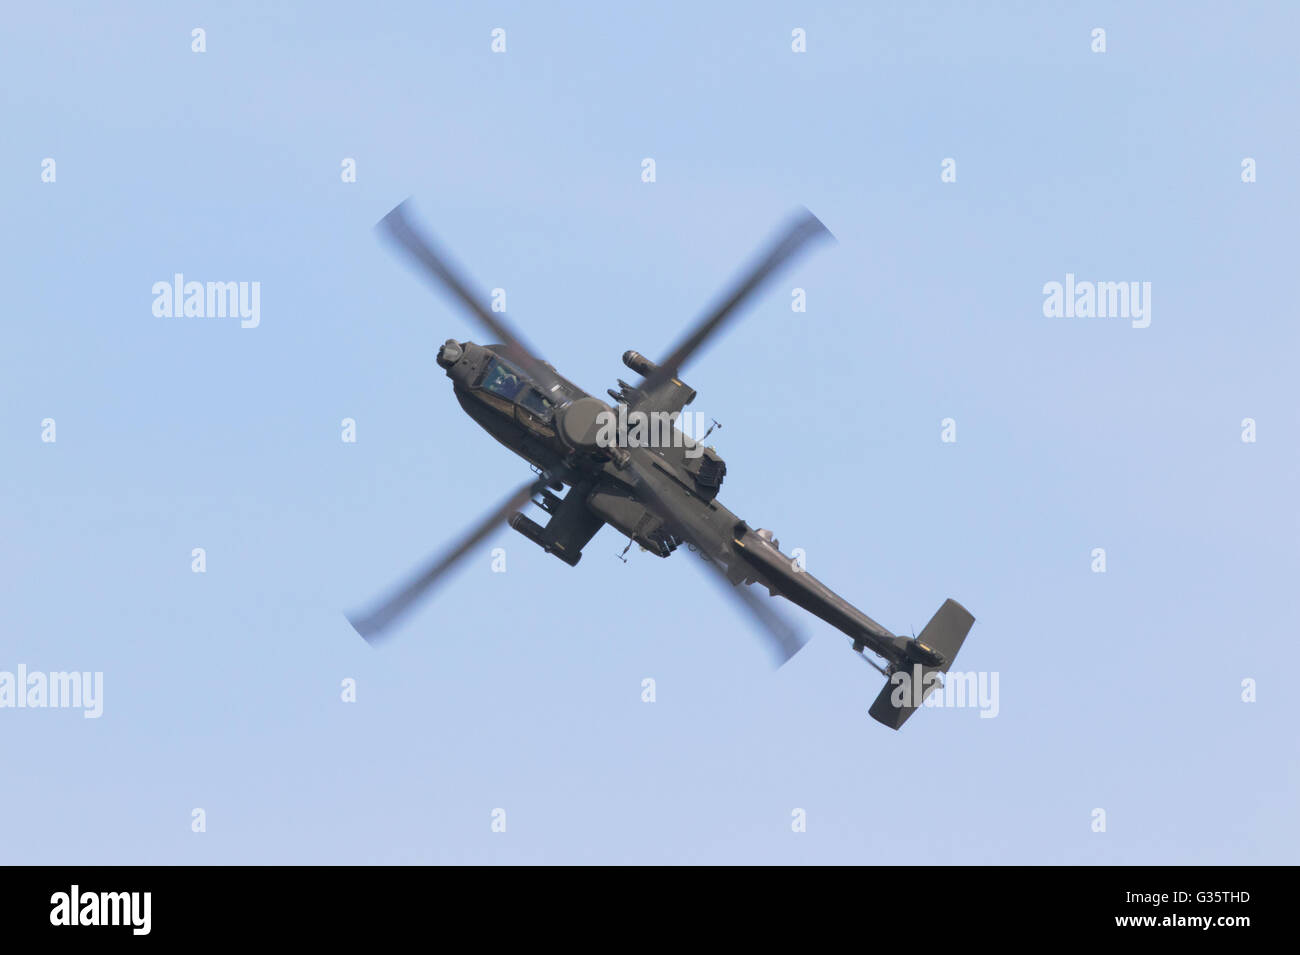 An AgustaWestland Apache AH Mk 1 helicopter in flight seen from above, Duxford airport, UK - Stock Image